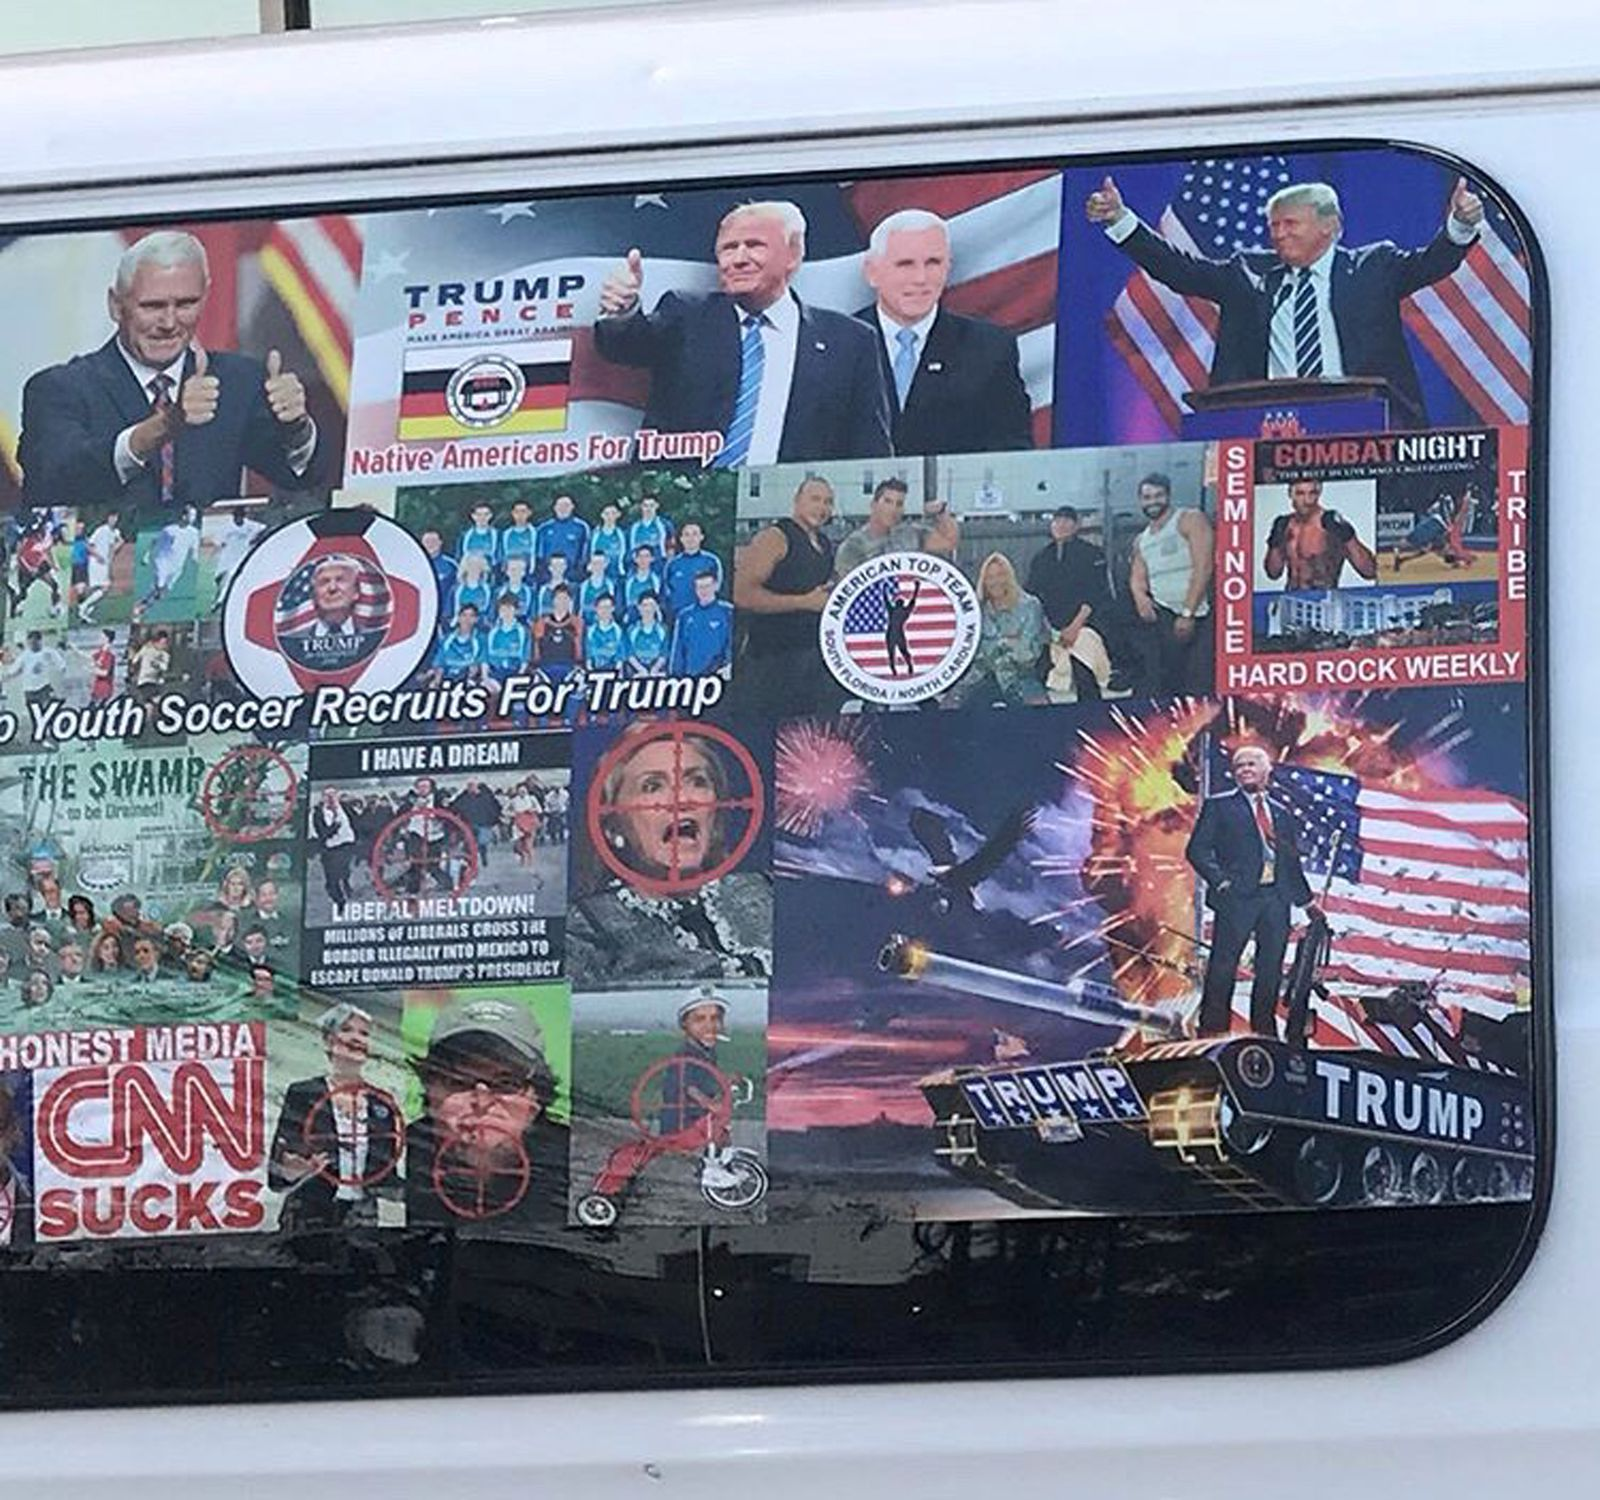 A van with windows covered in pro-Trump and anti-Democrat stickers is shown in this photo taken in Hollywood, Florida